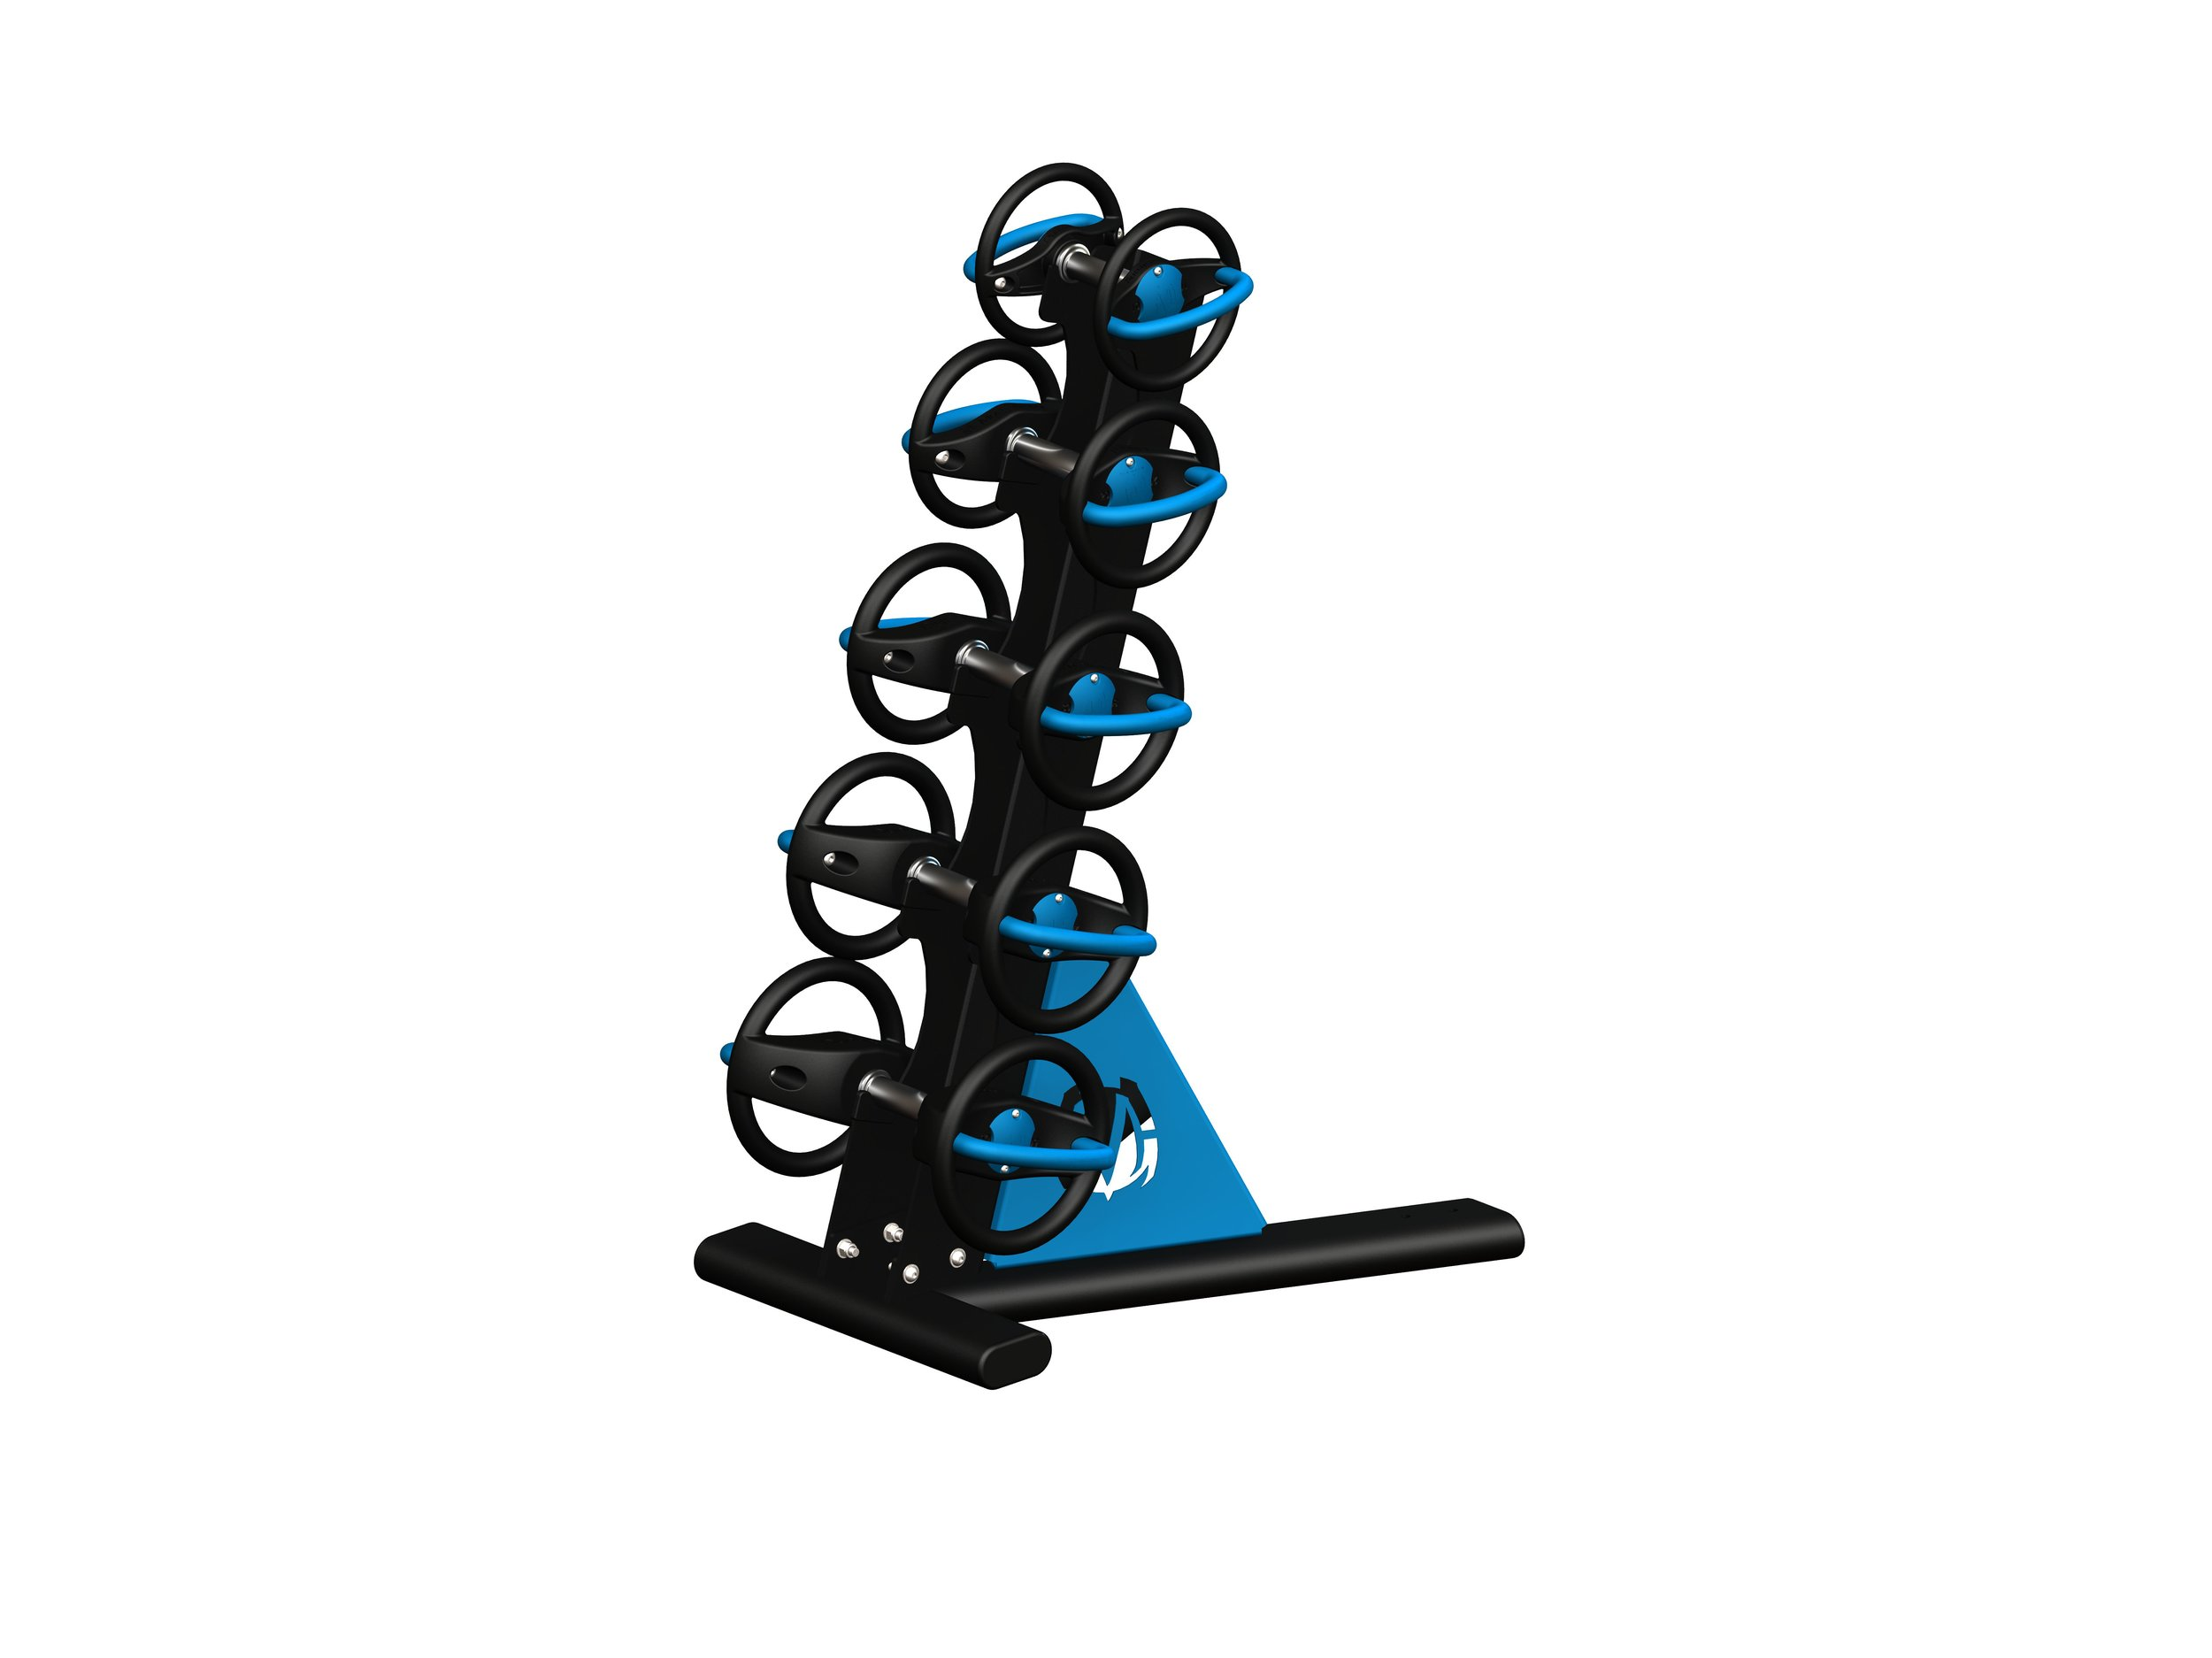 Single tier rack holds 5 DynaBells of any size.